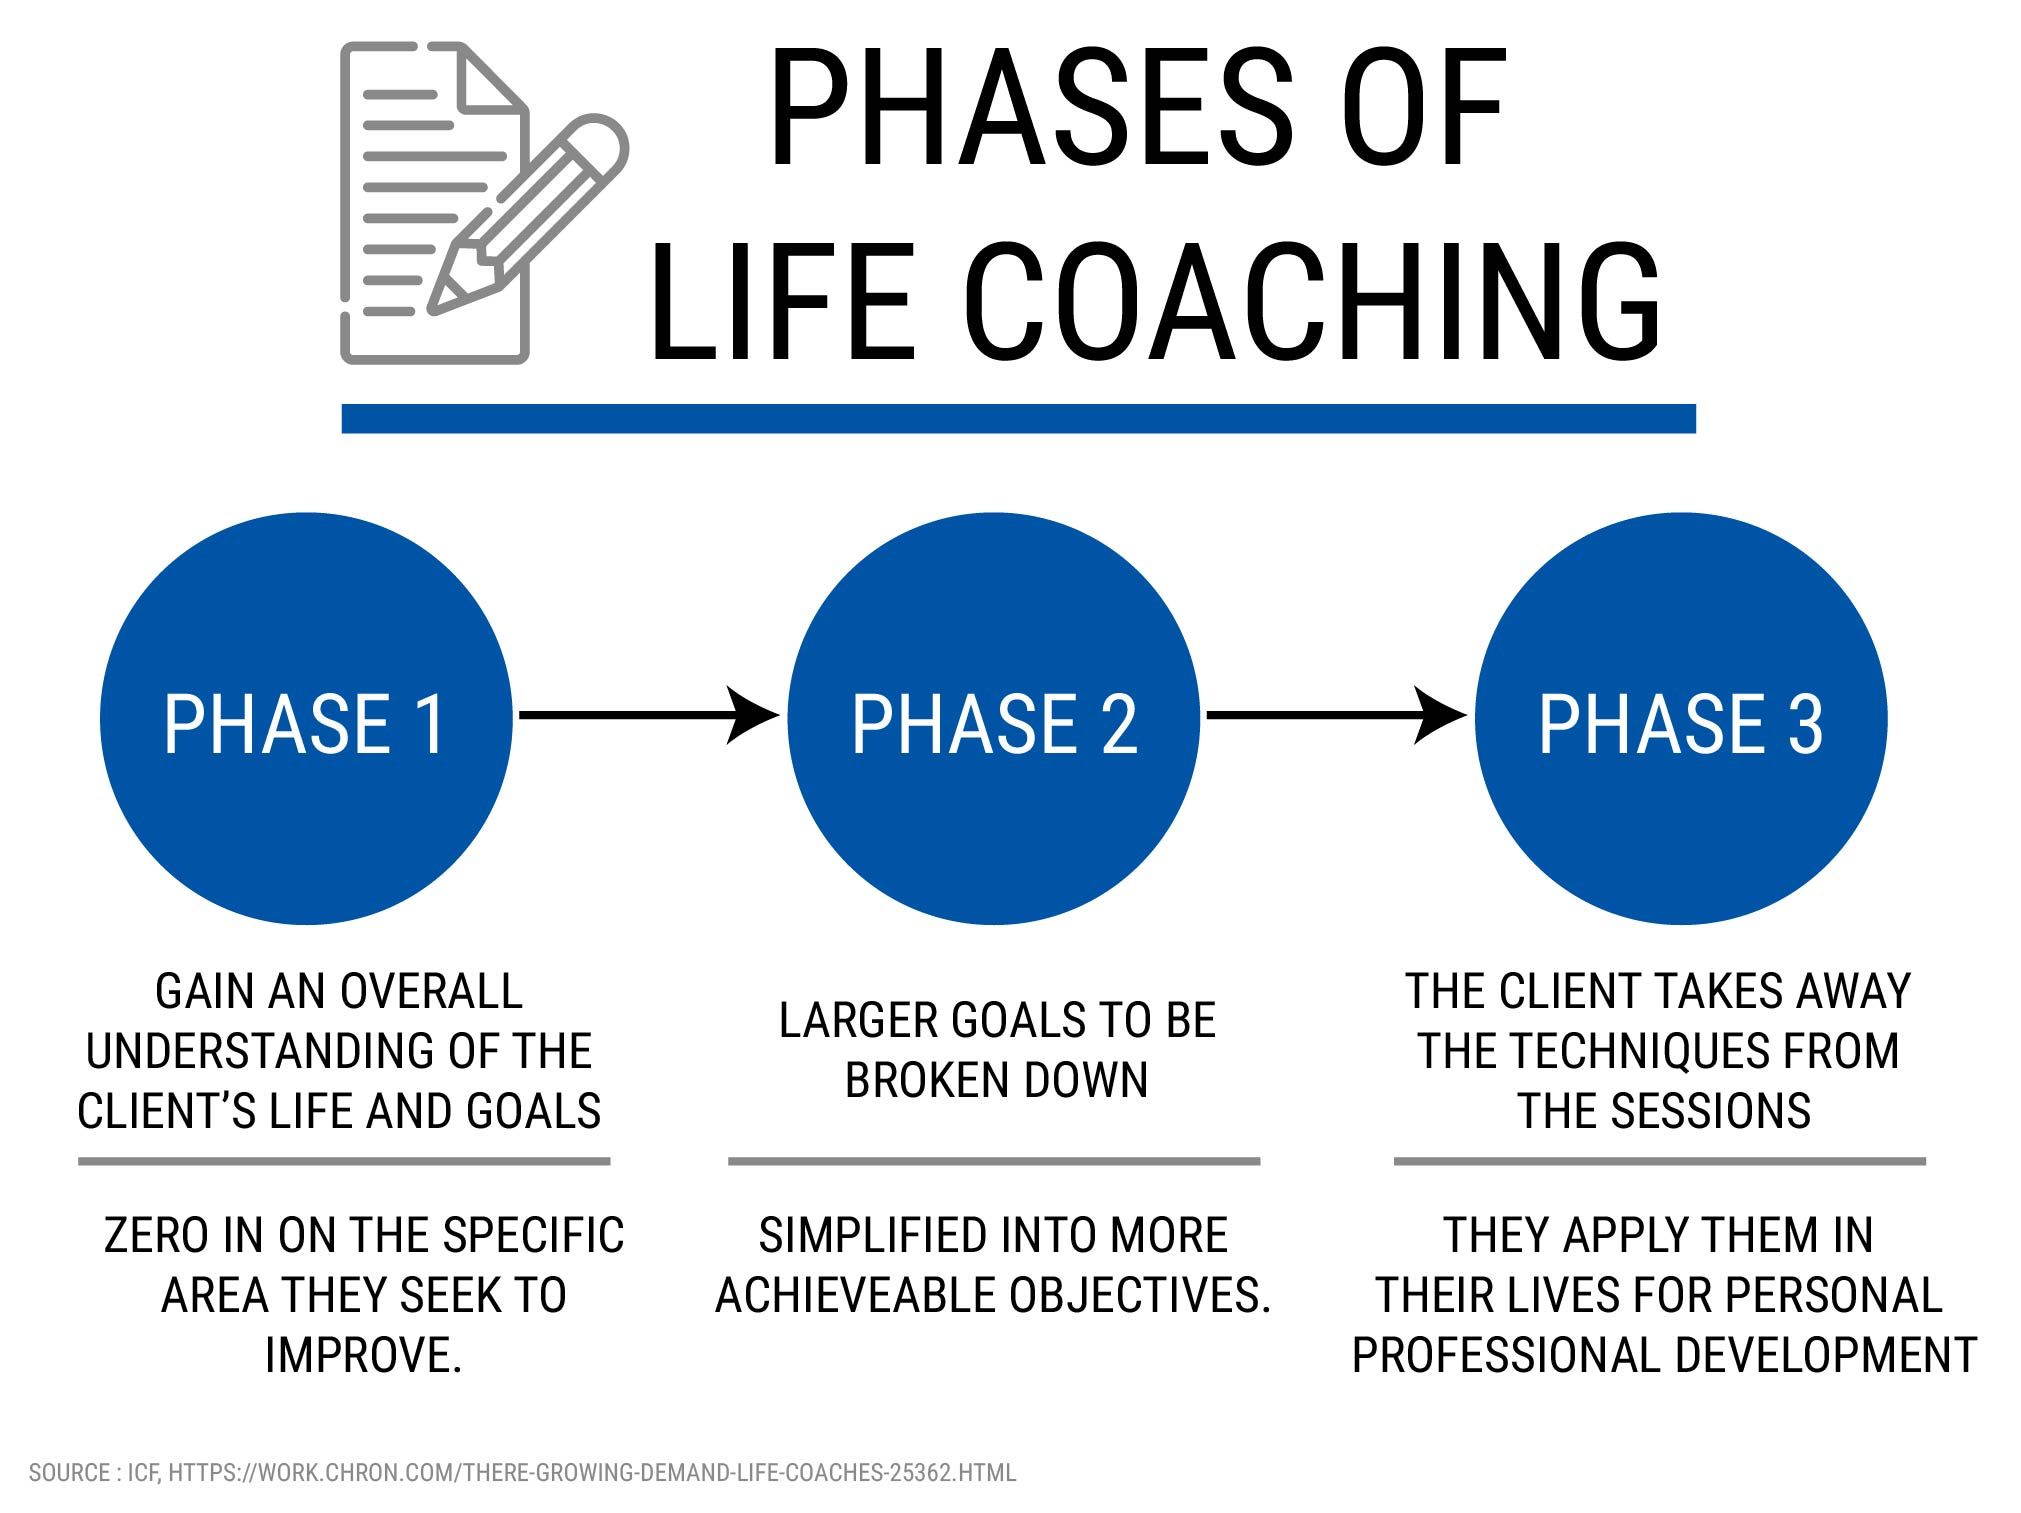 PHASES OF LIFE COACHING